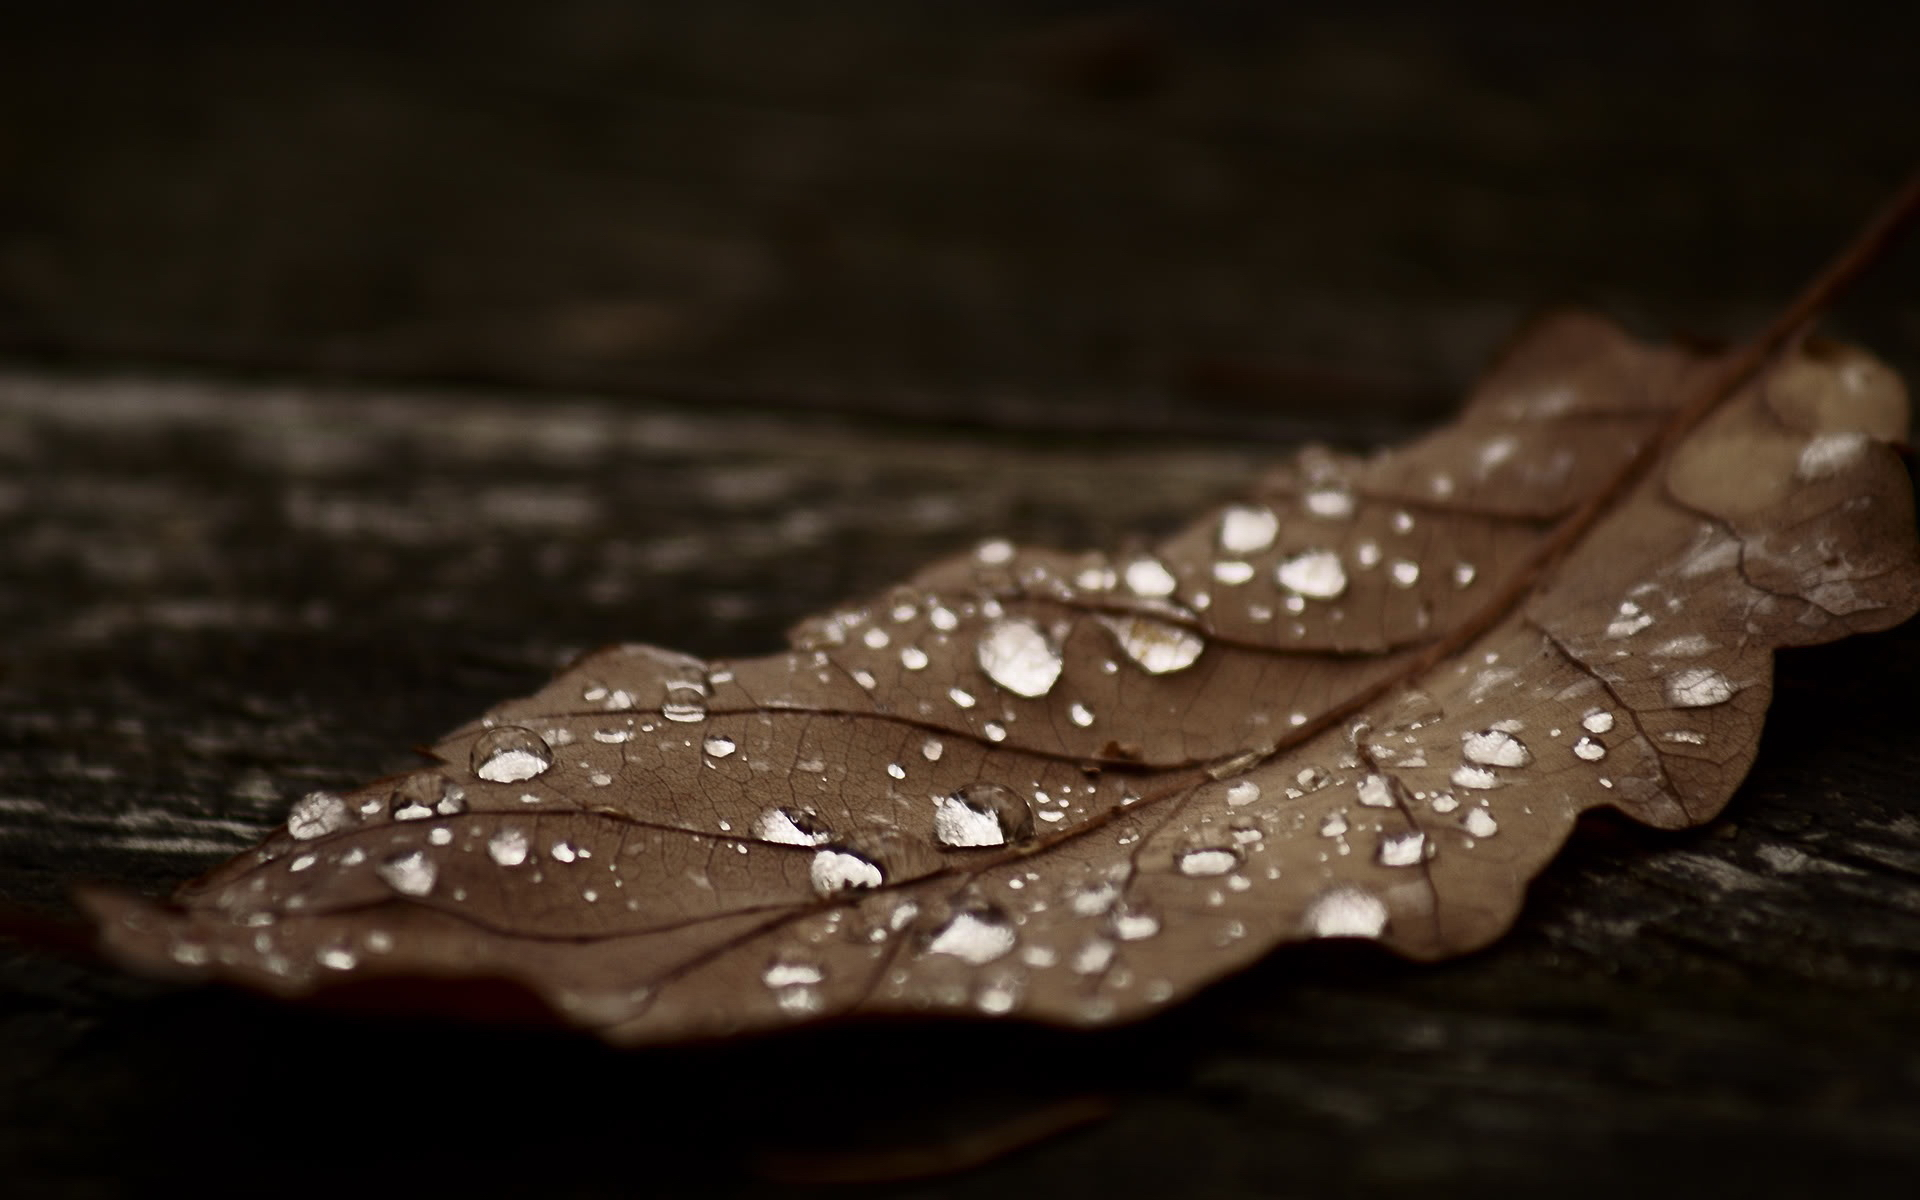 12712 download wallpaper Plants, Water, Autumn, Leaves, Drops screensavers and pictures for free